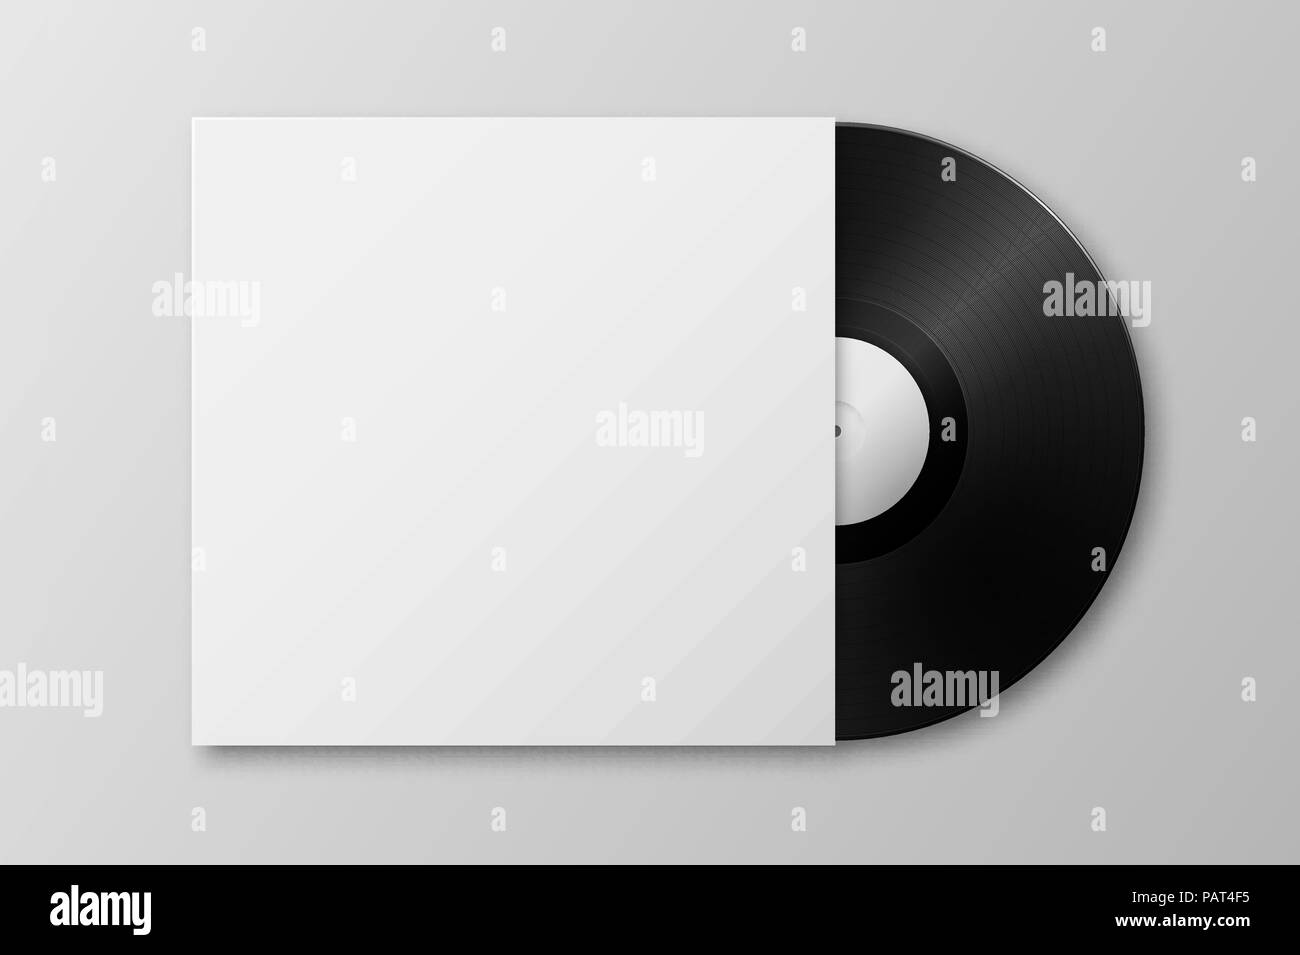 Record Cover Stock Photos Amp Record Cover Stock Images Alamy